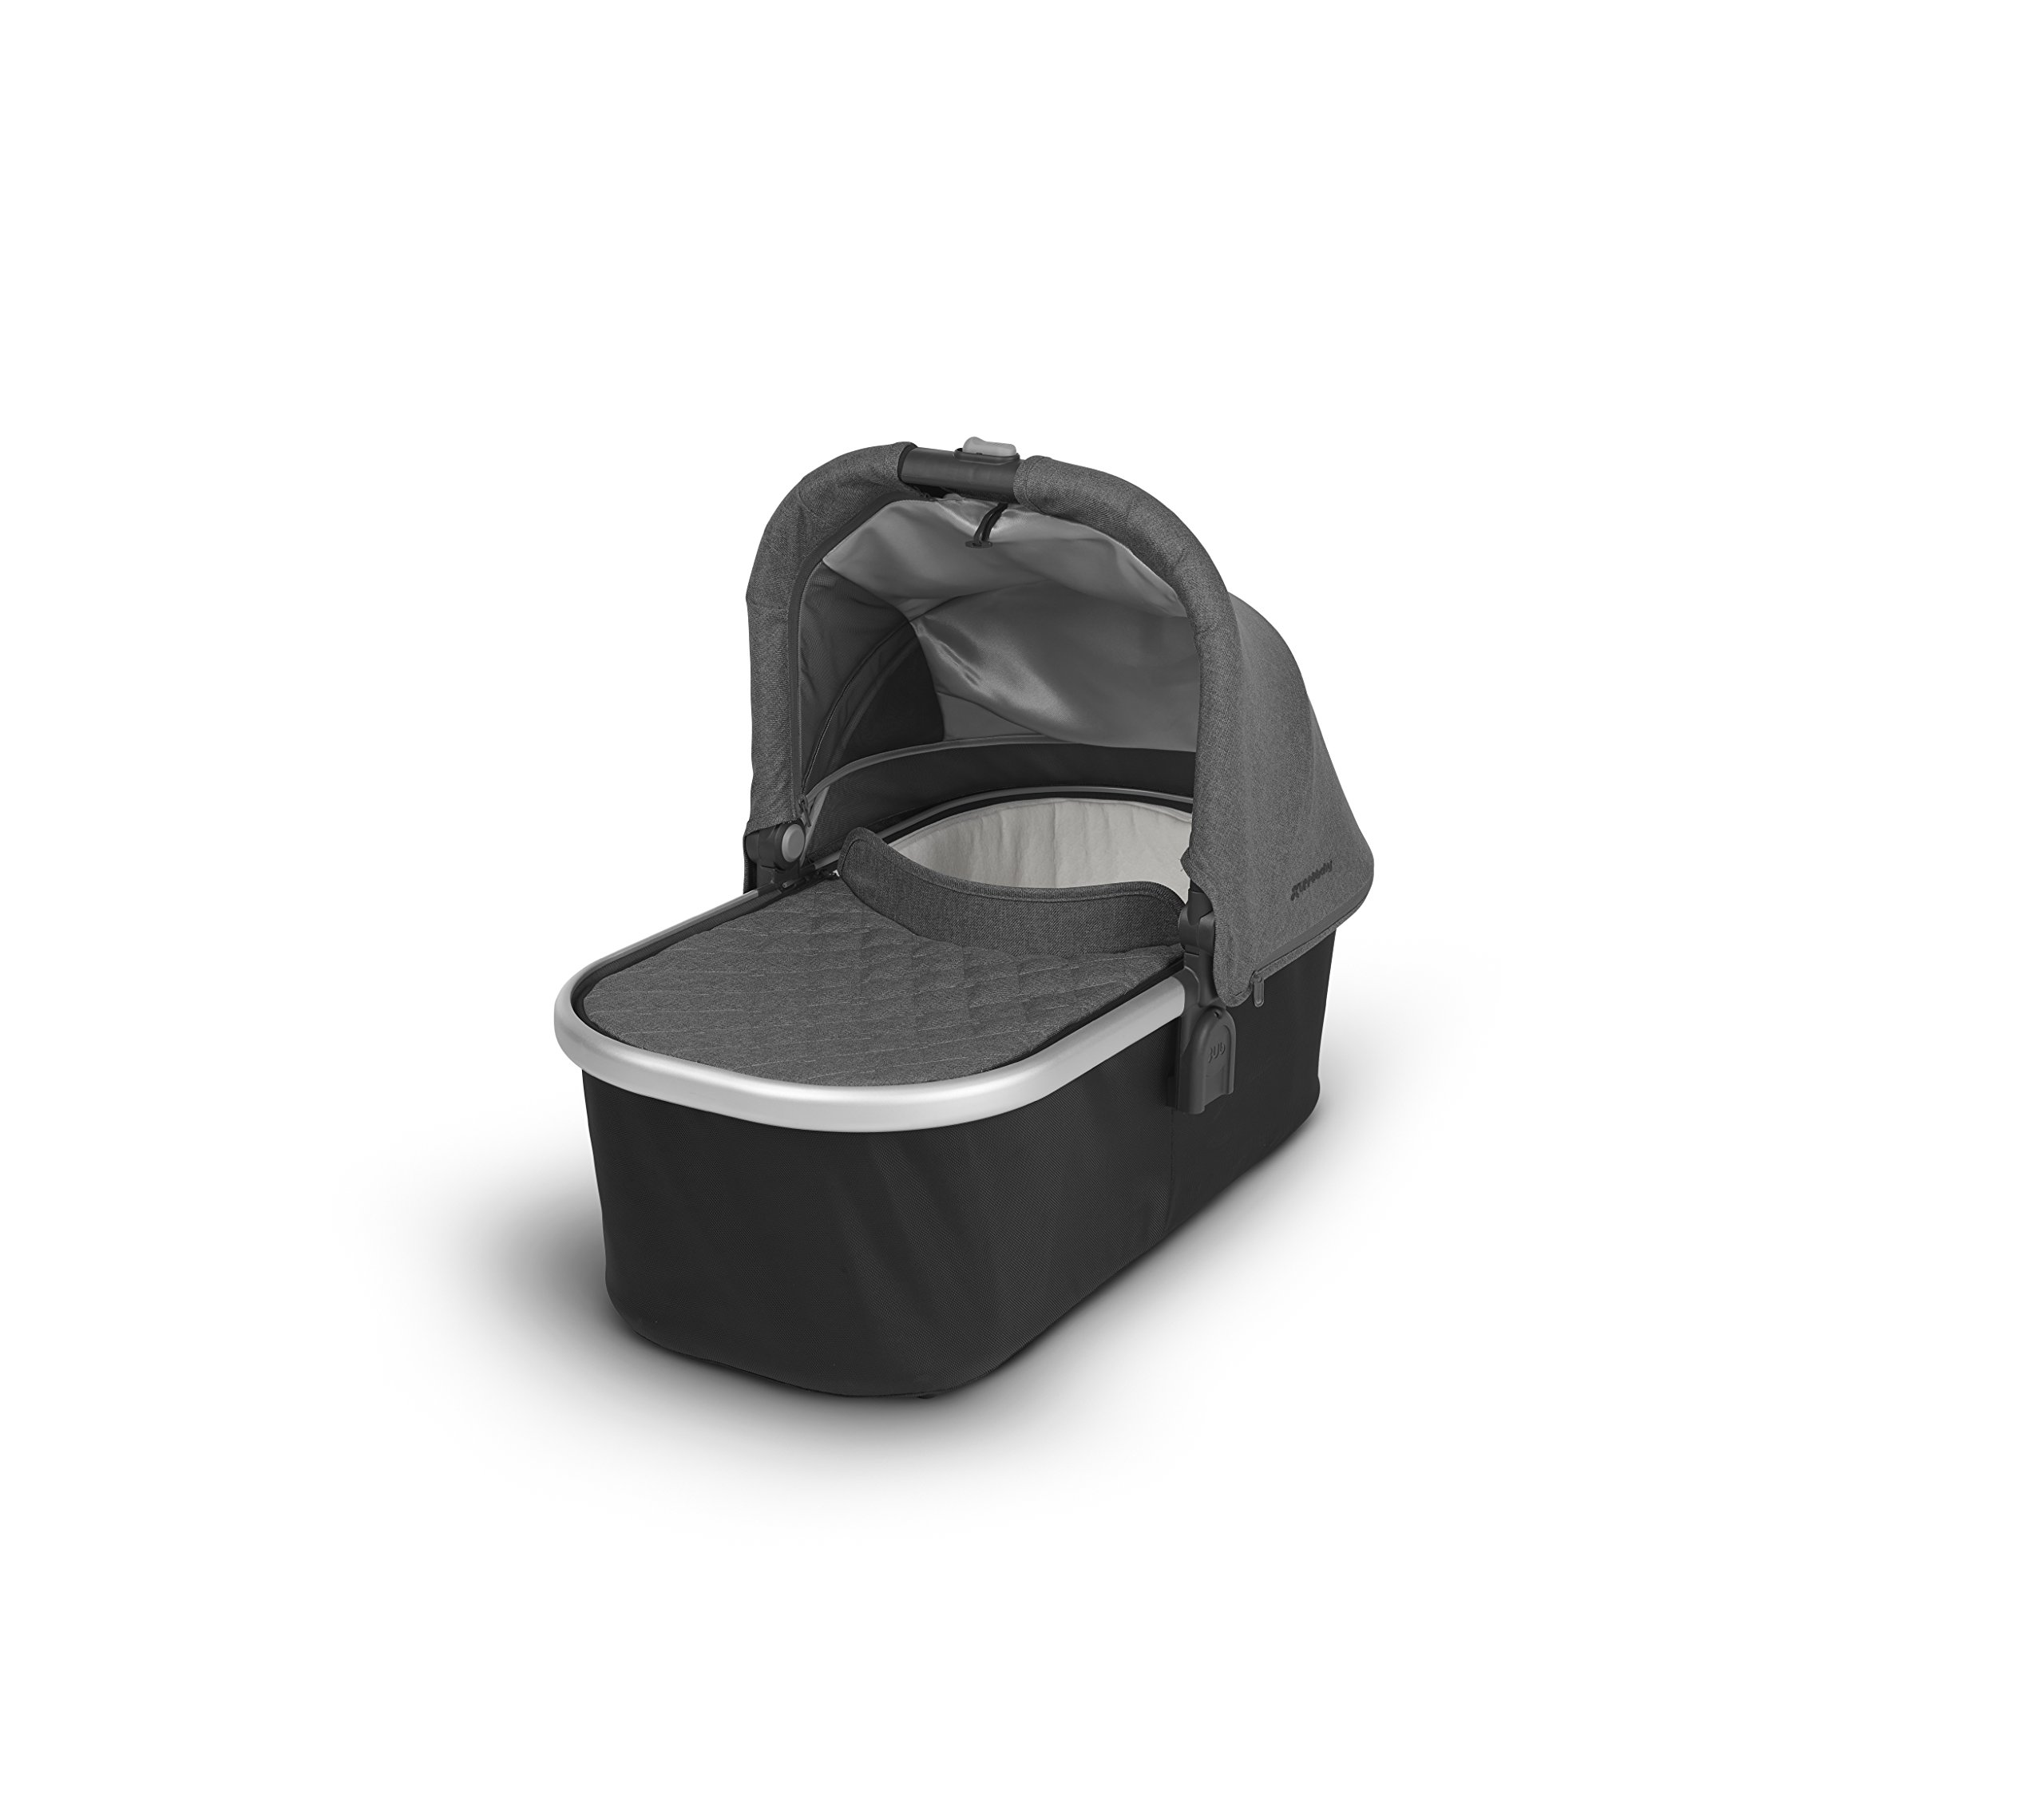 2018 UPPAbaby Bassinet- Jordan (Charcoal Melange/Silver) by UPPAbaby